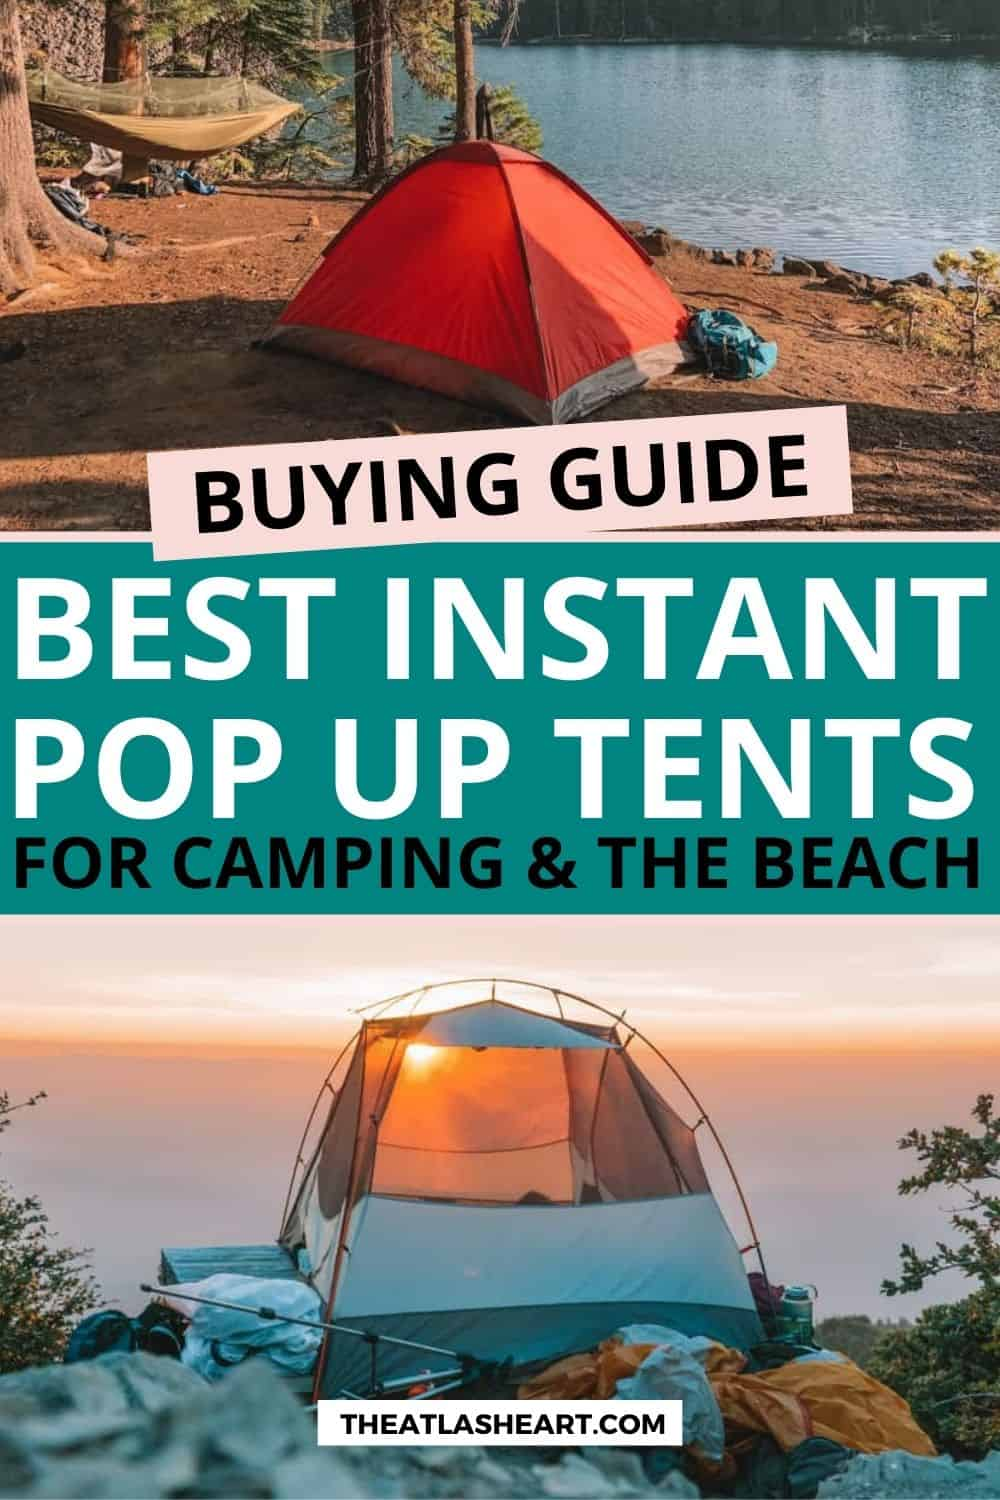 13 Best Pop Up Tents for Camping, Beach Days, and Backyard Hangouts